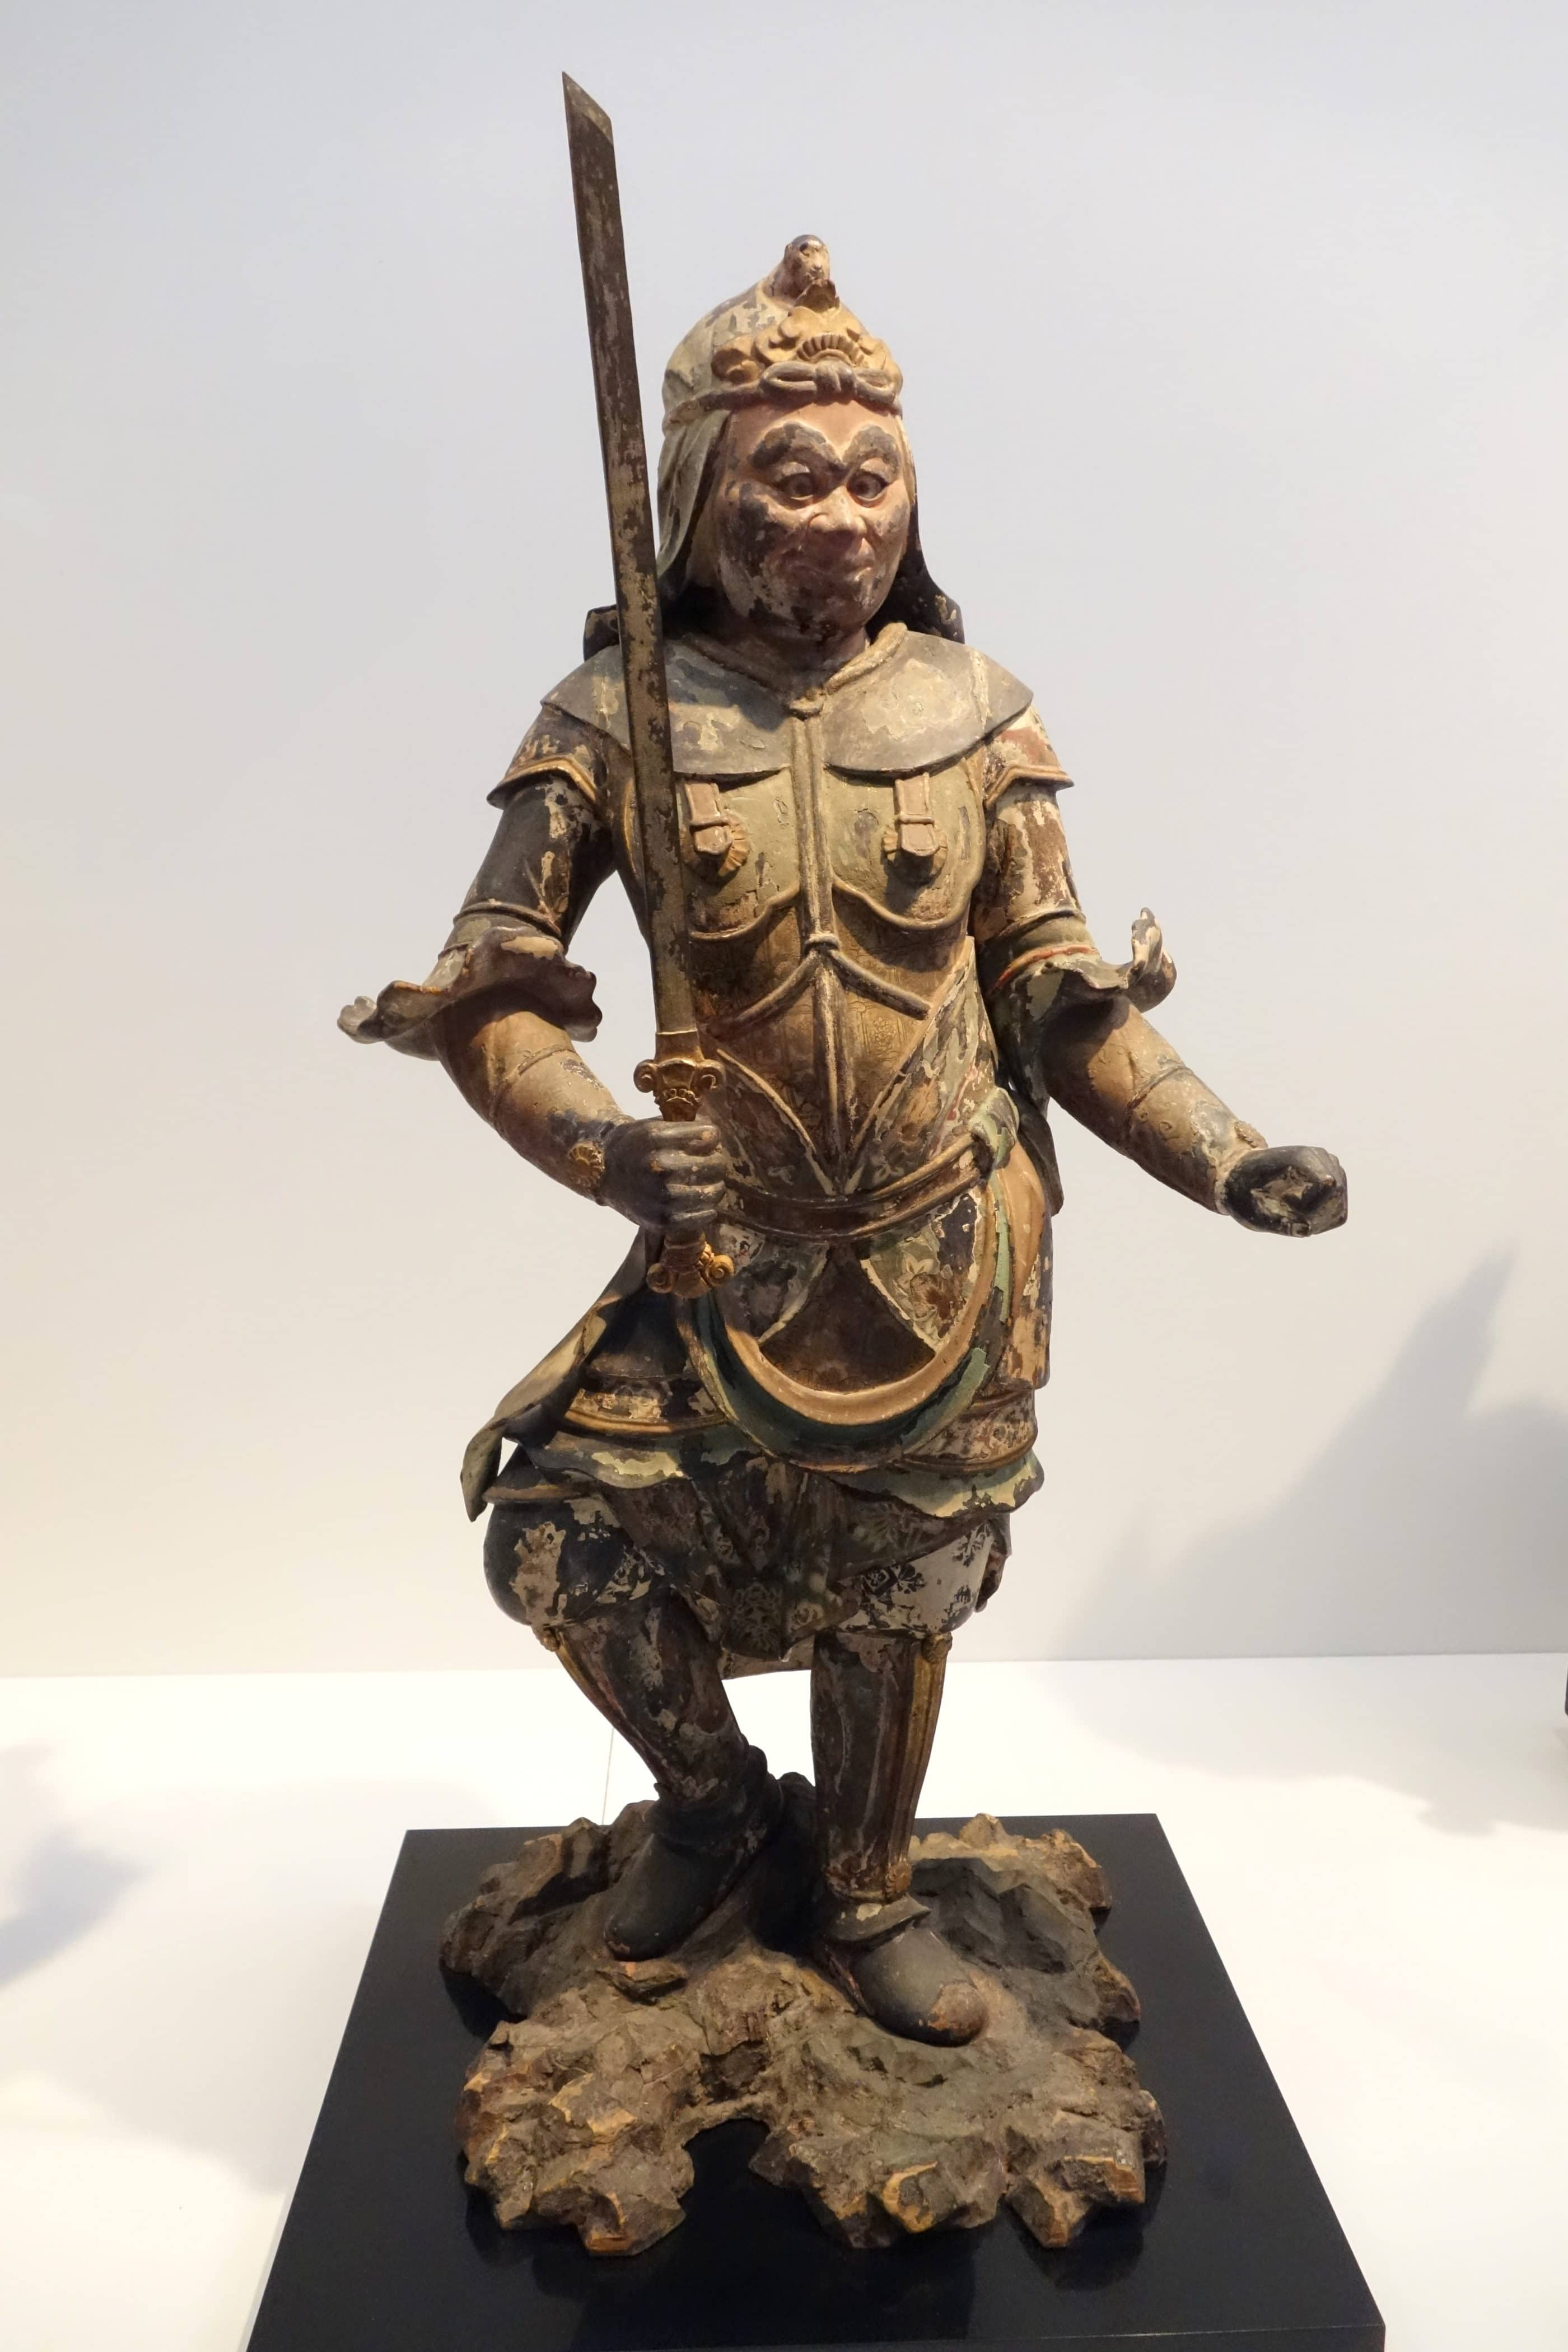 A samurai statue on display at Tokyo National Museum.